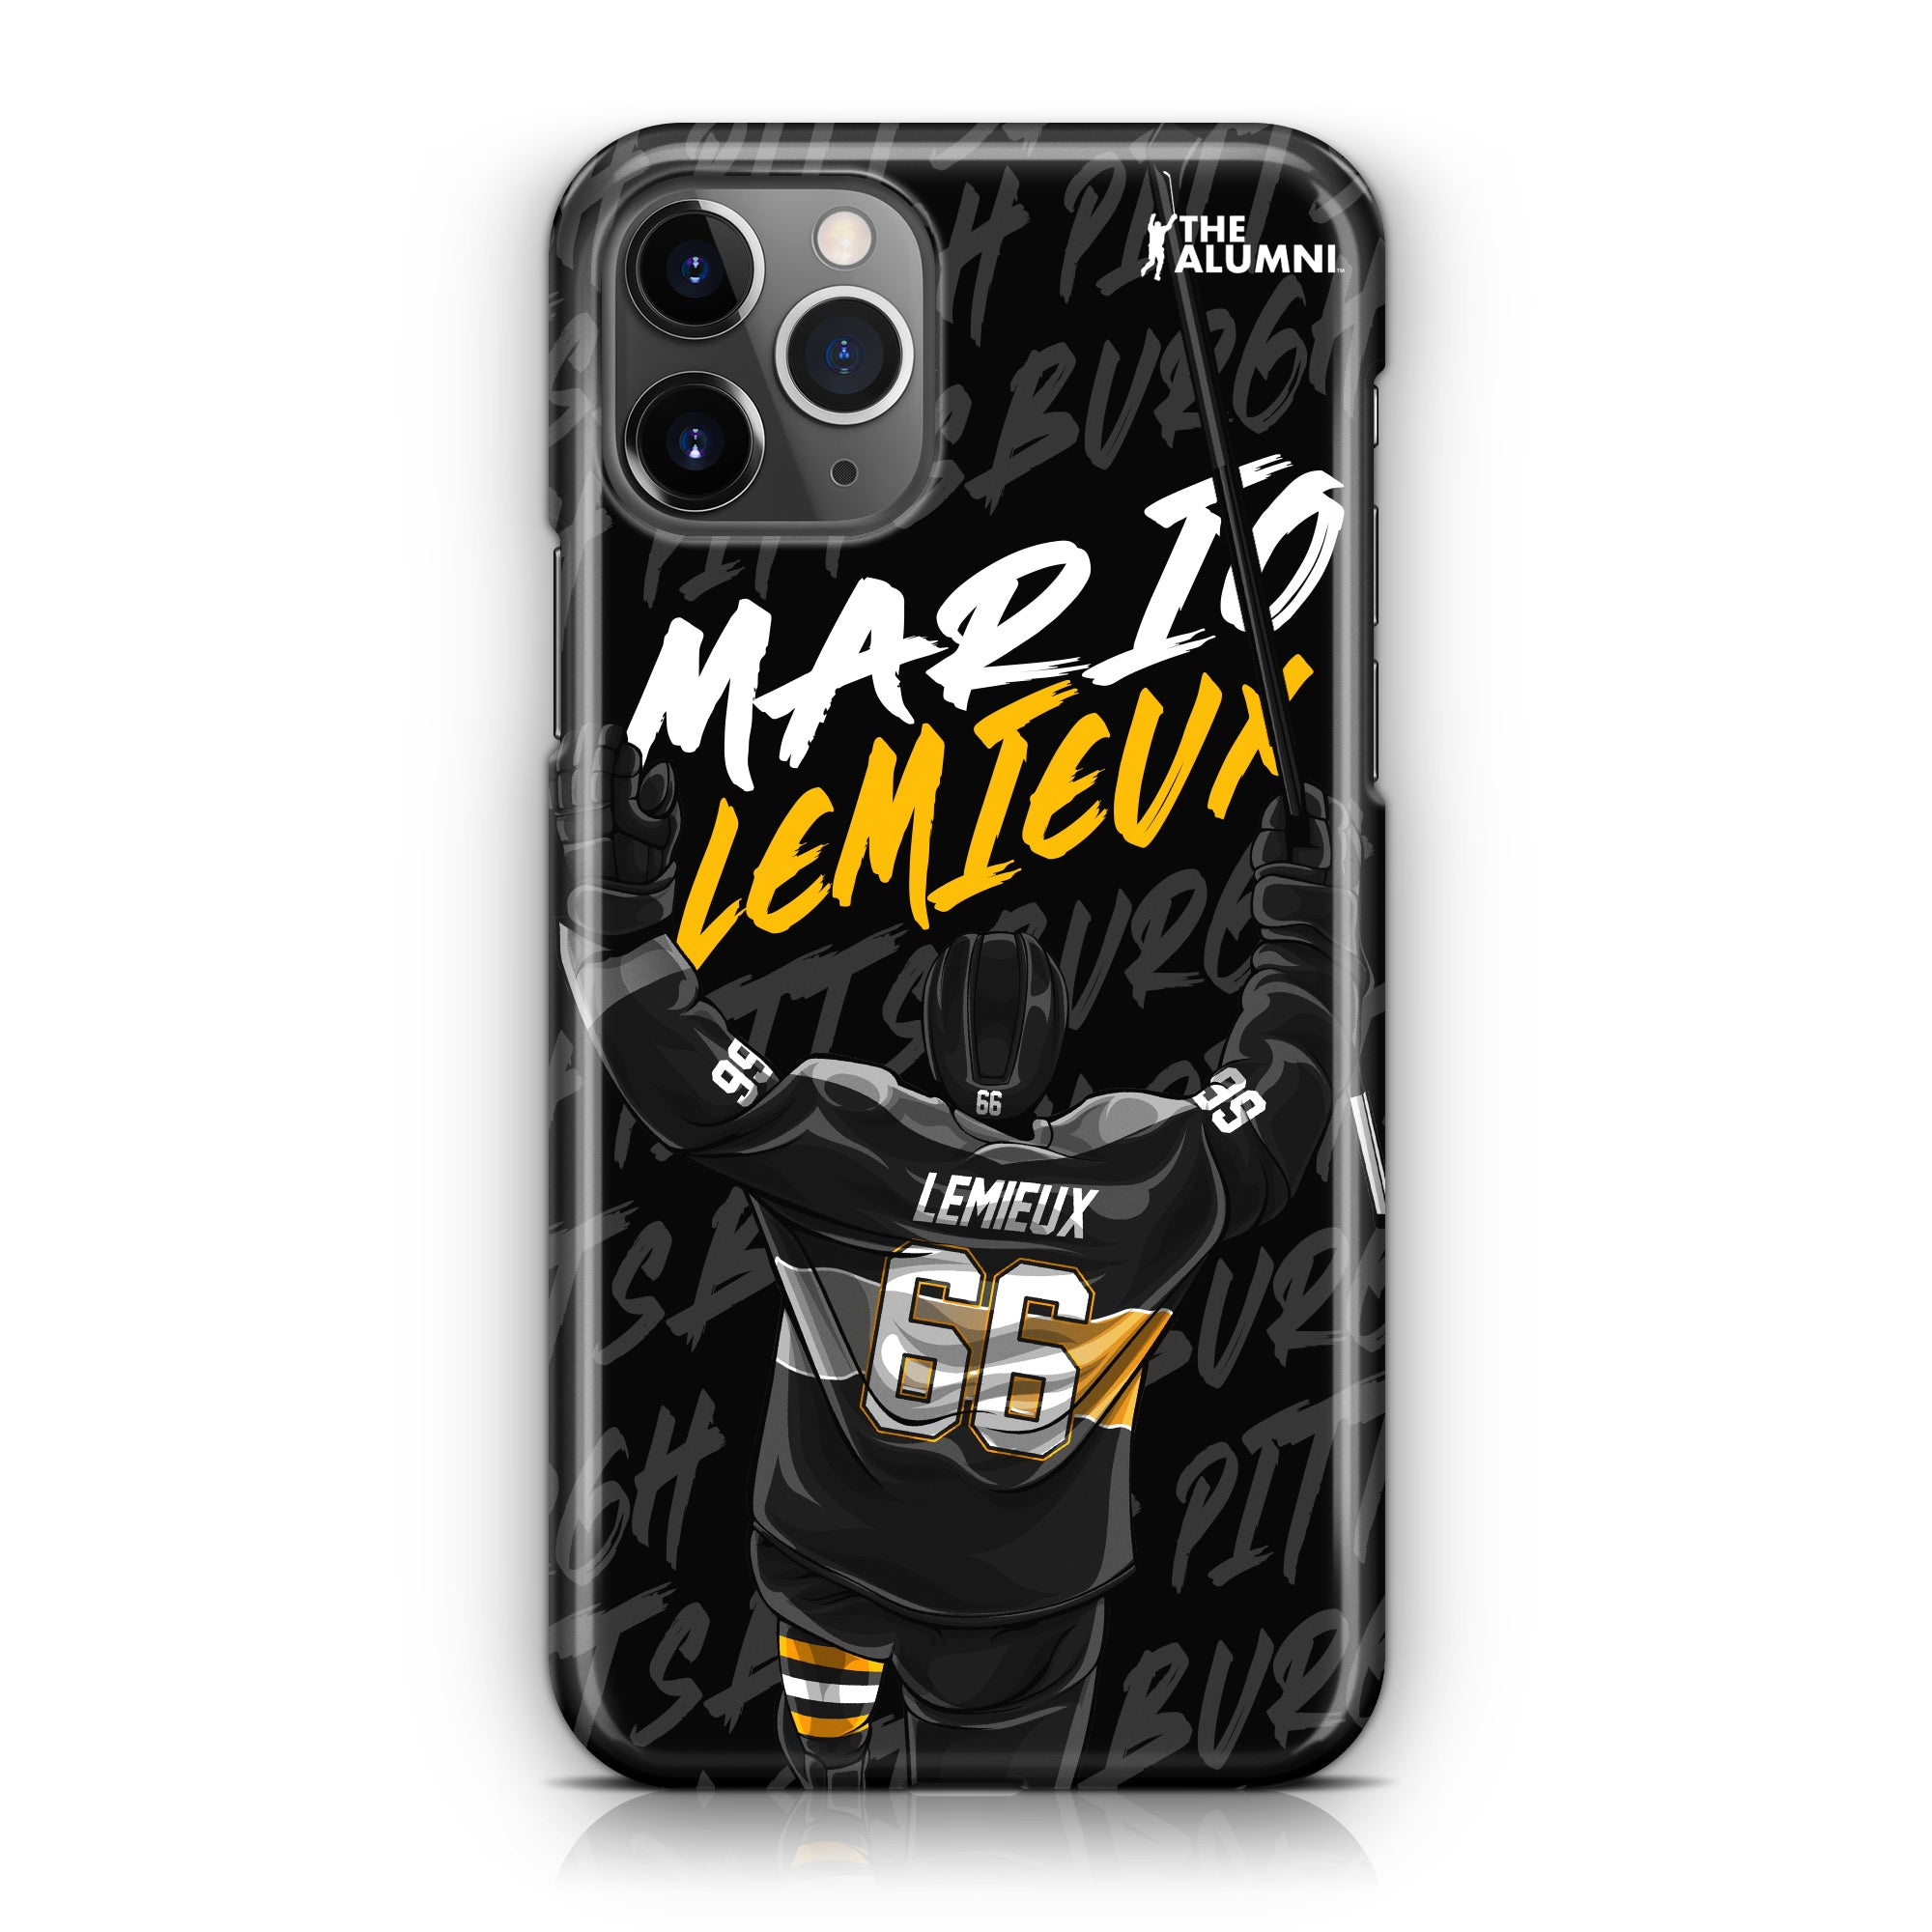 Lemieux Legend Series 2.0 Case